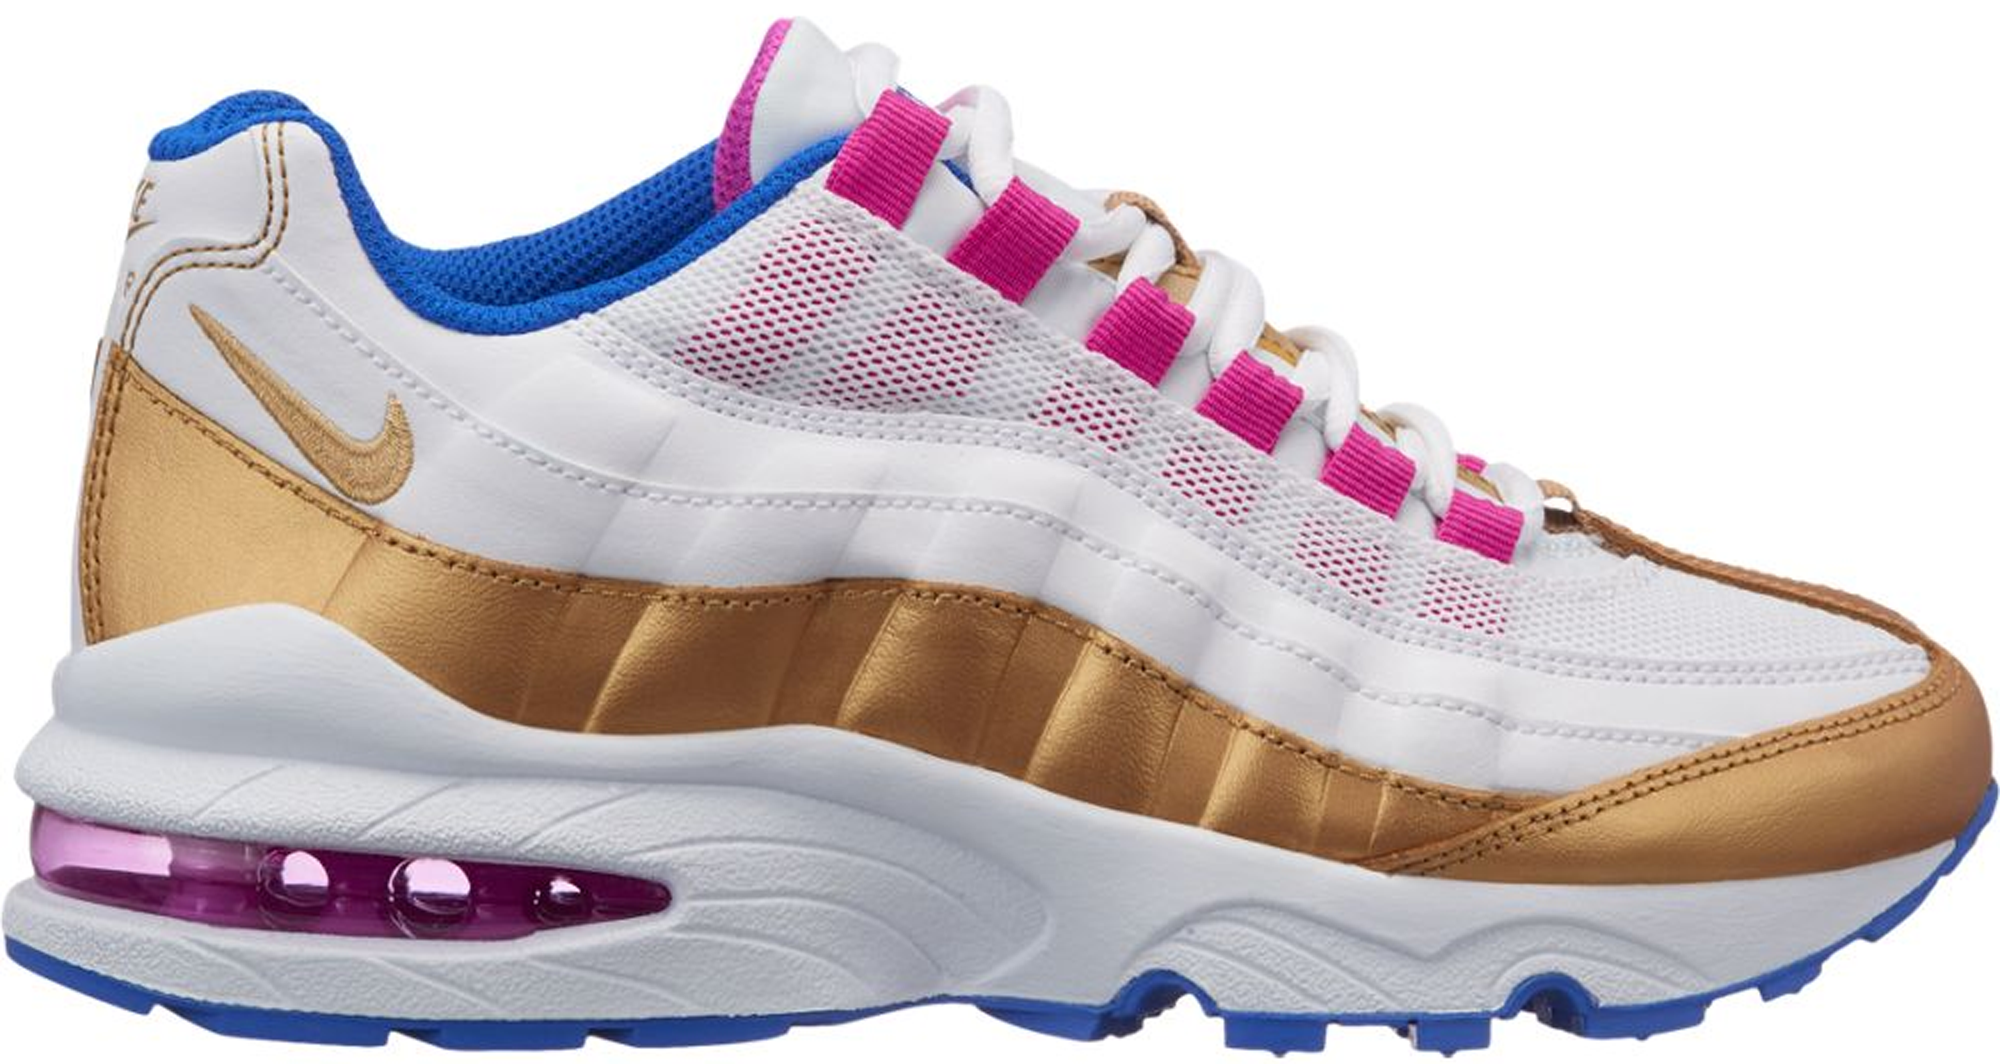 Air Max 95 Peanut Butter & Jelly (GS)